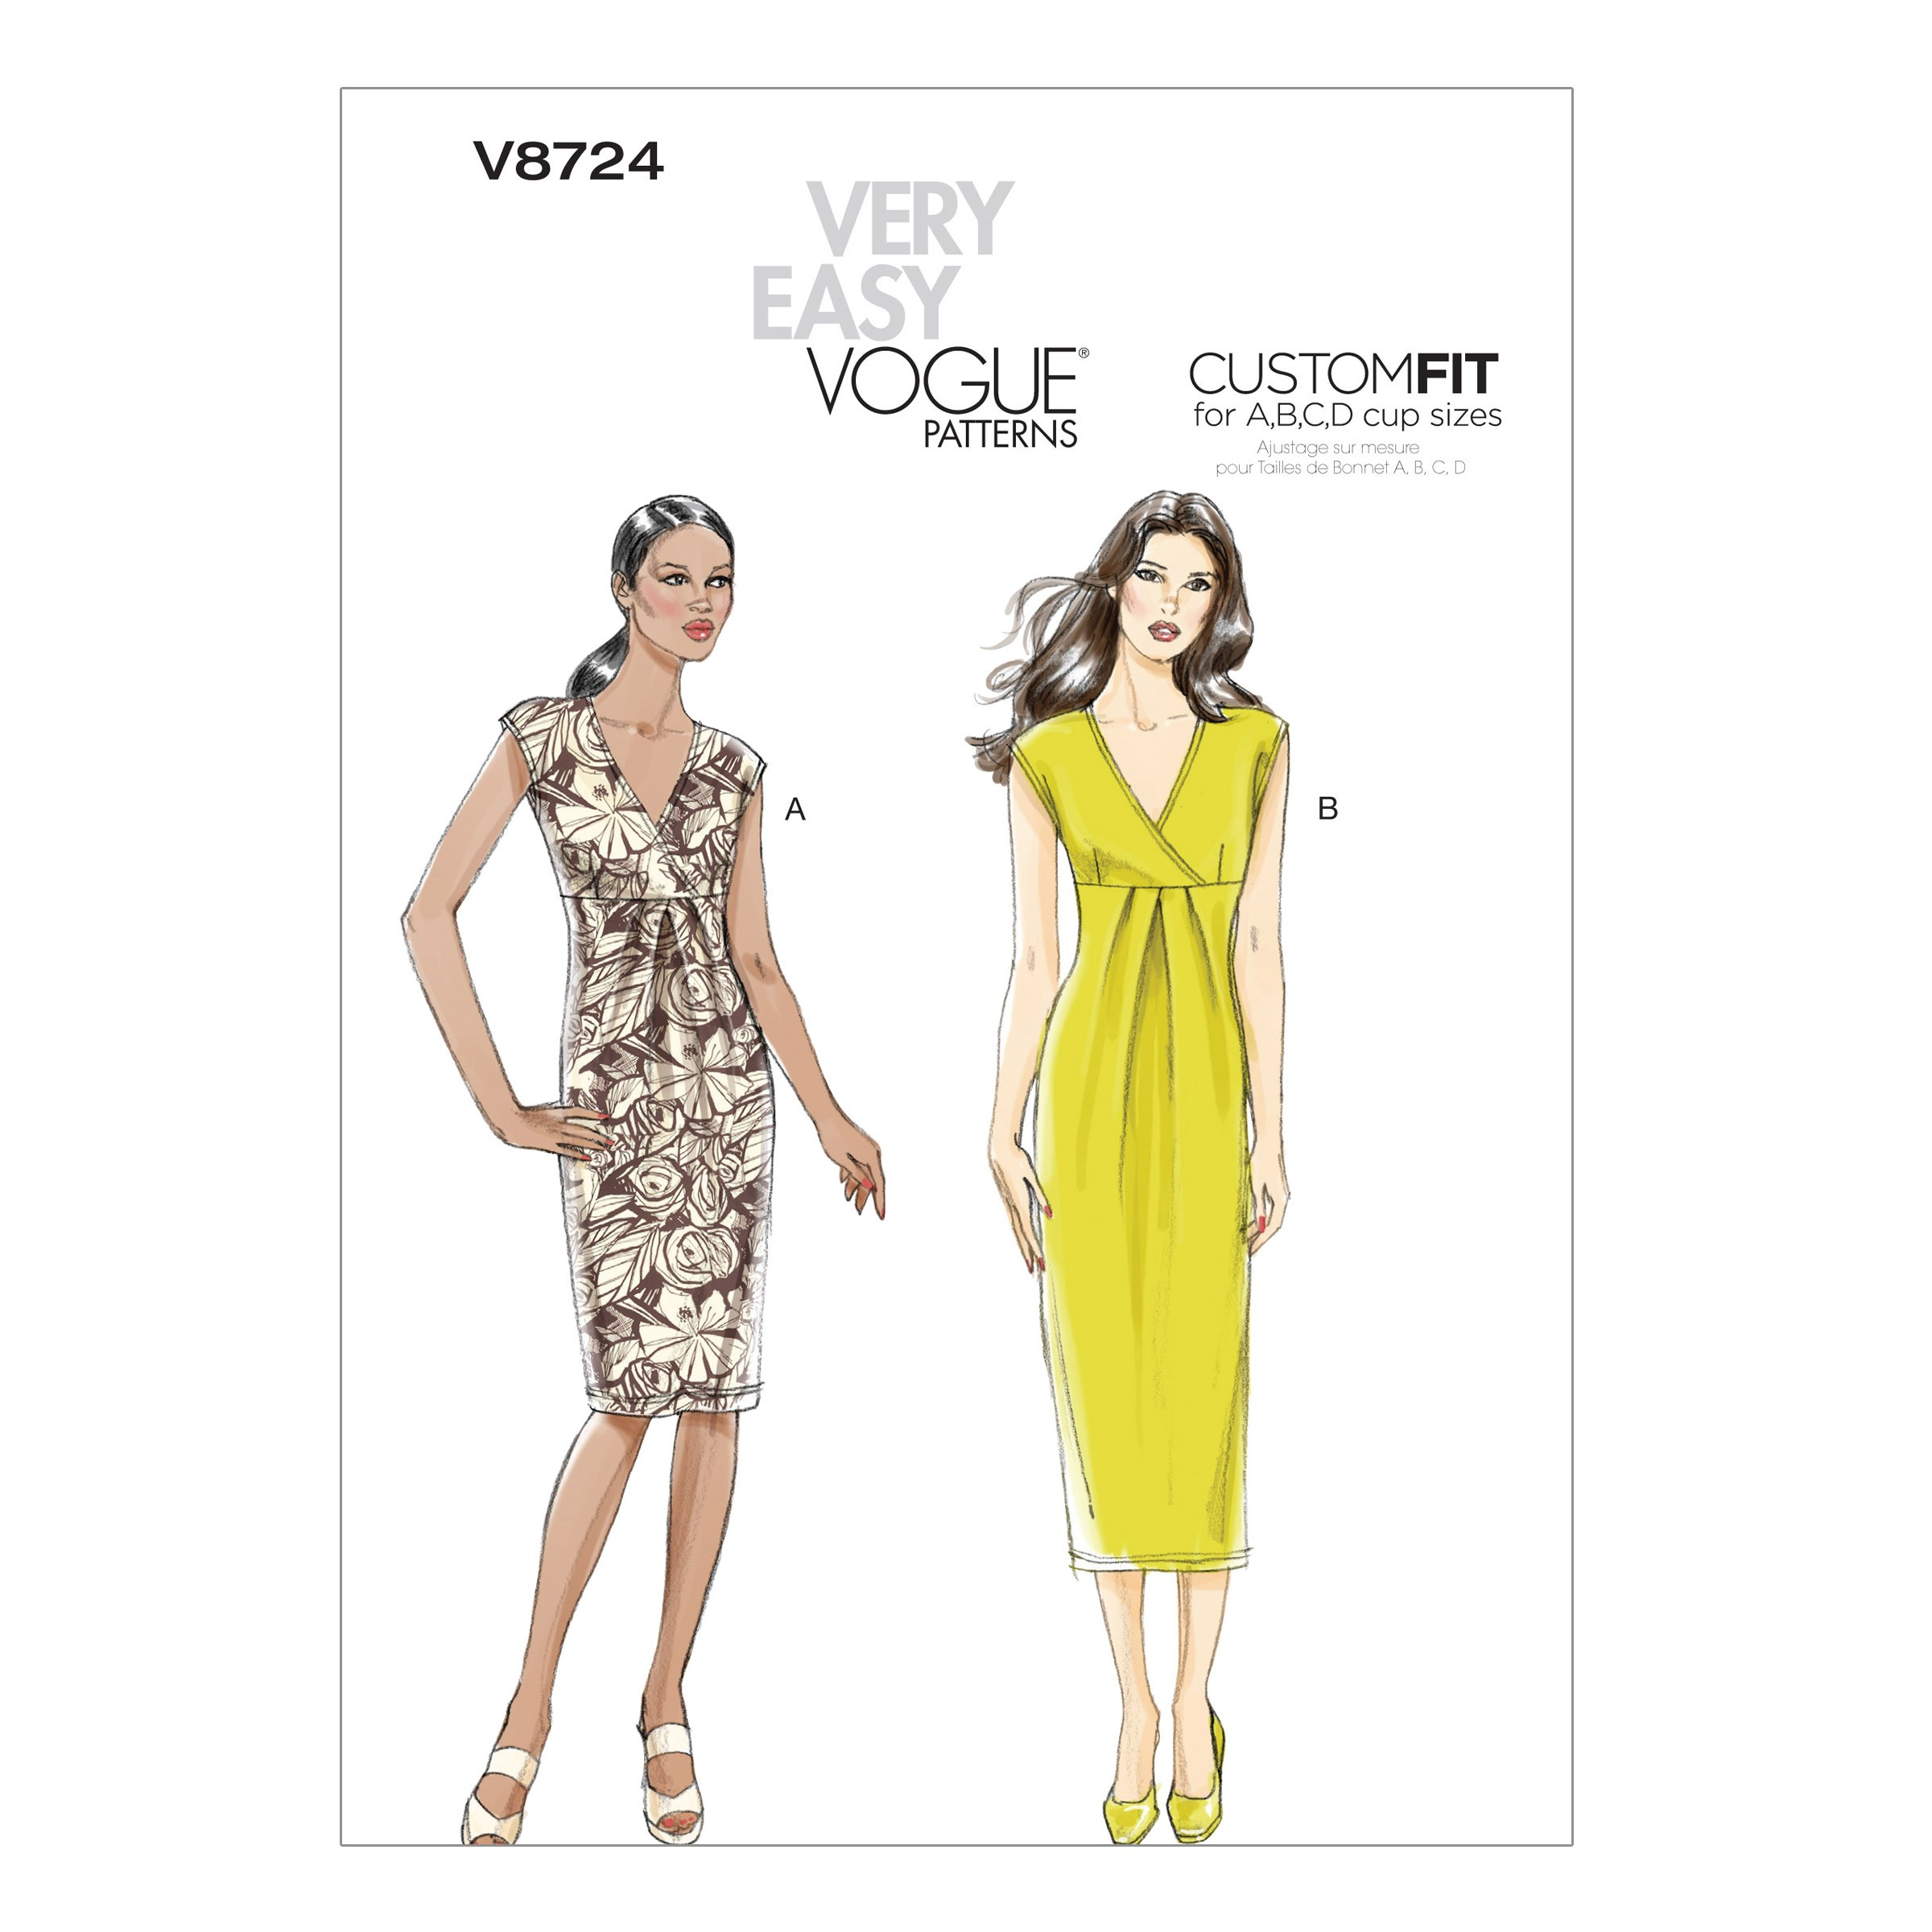 Vogue Sewing Pattern V8724 Misses' Dress